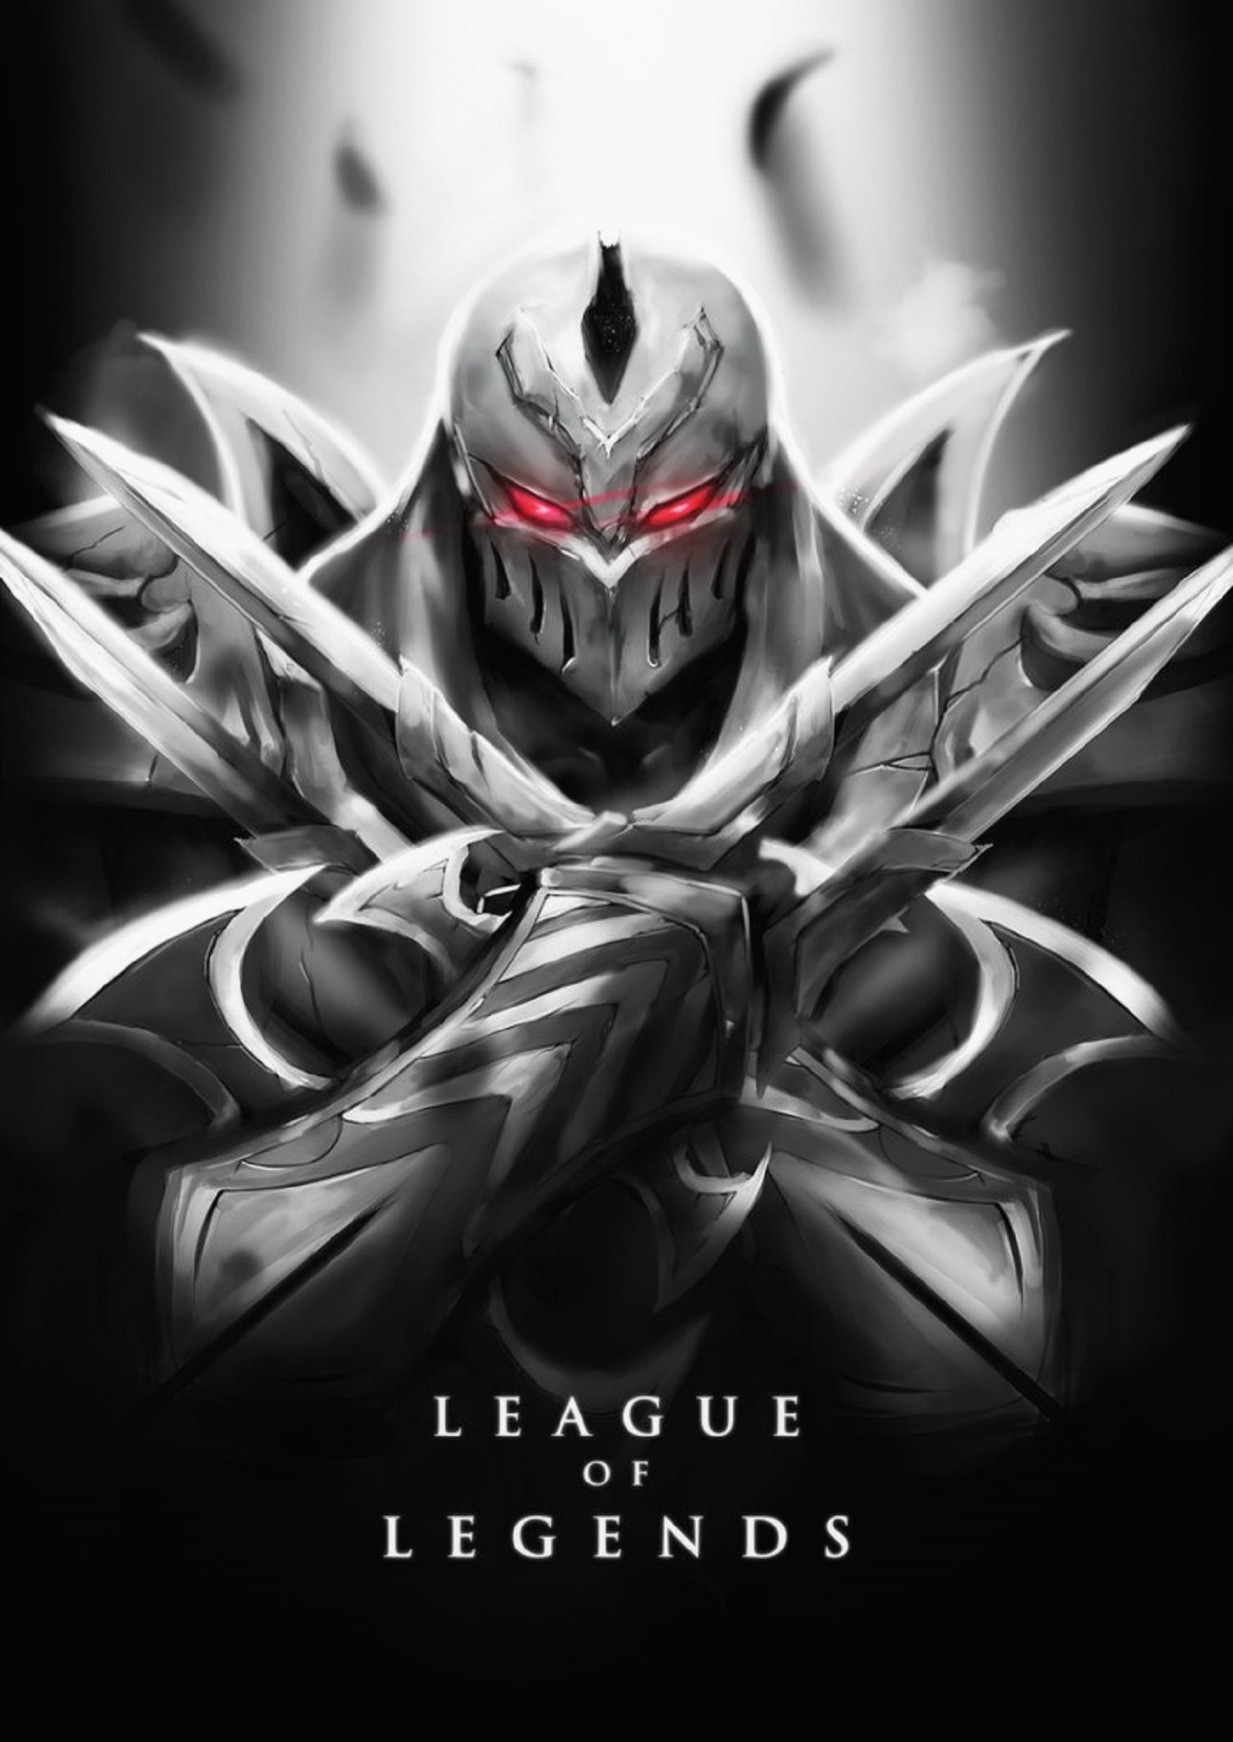 Live Wallpaper Android Lol Best Of League Legends Wallpaper Zed League Of Legends Logo 1233x1742 Wallpaper Teahub Io